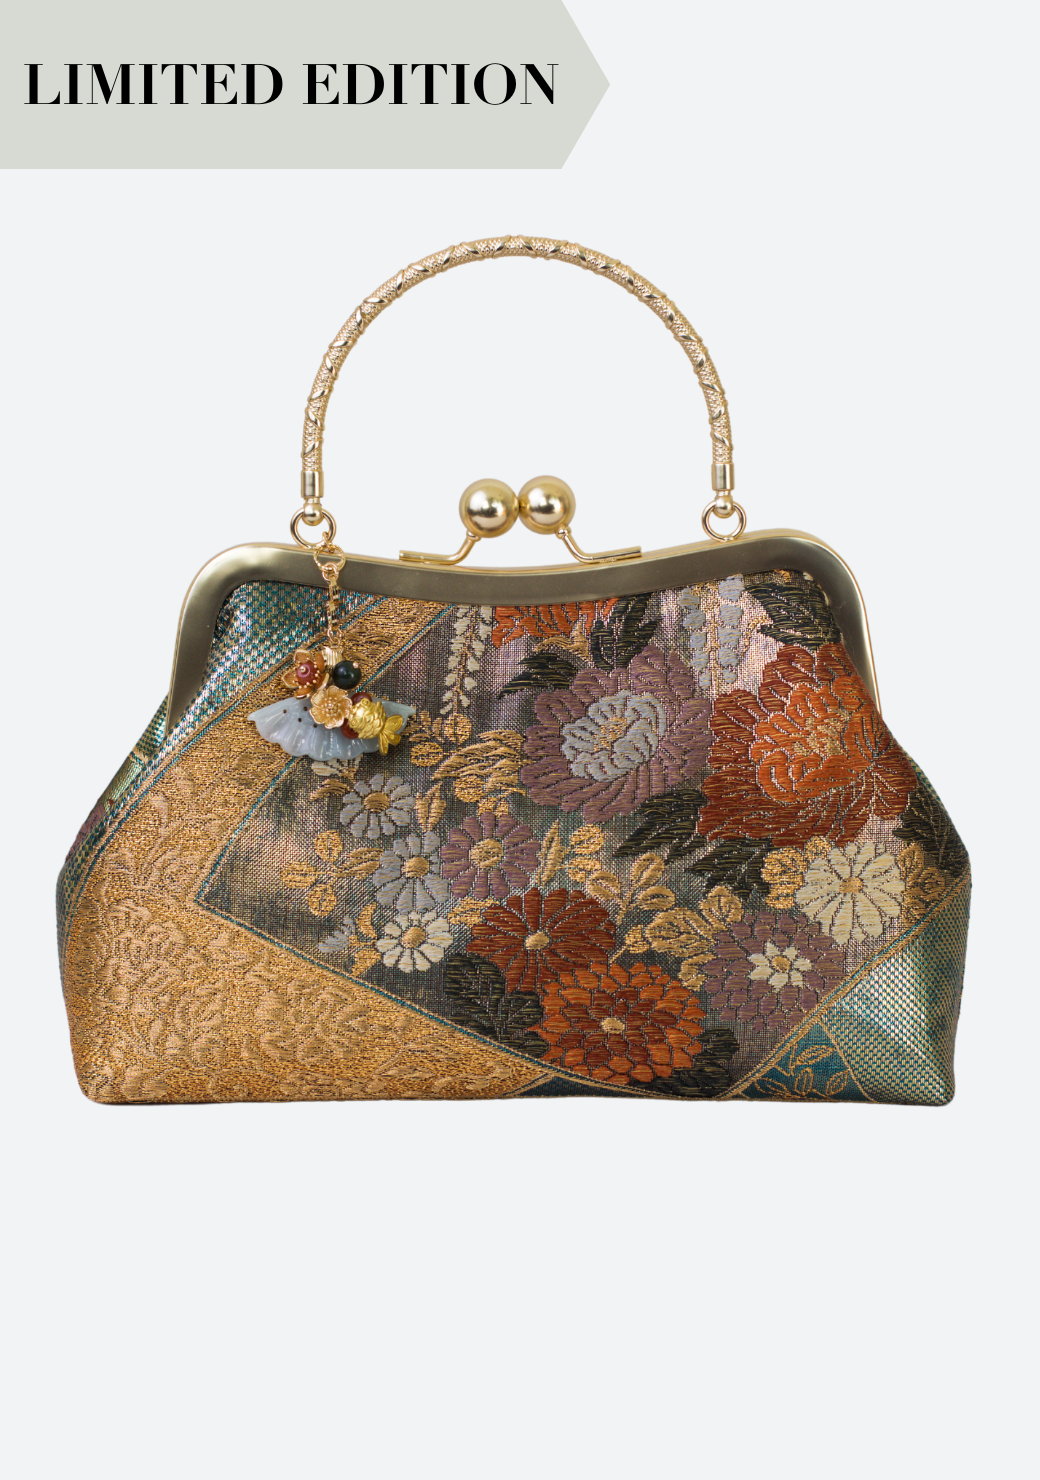 Jadeite Obi Silk Handbag in Green Botan